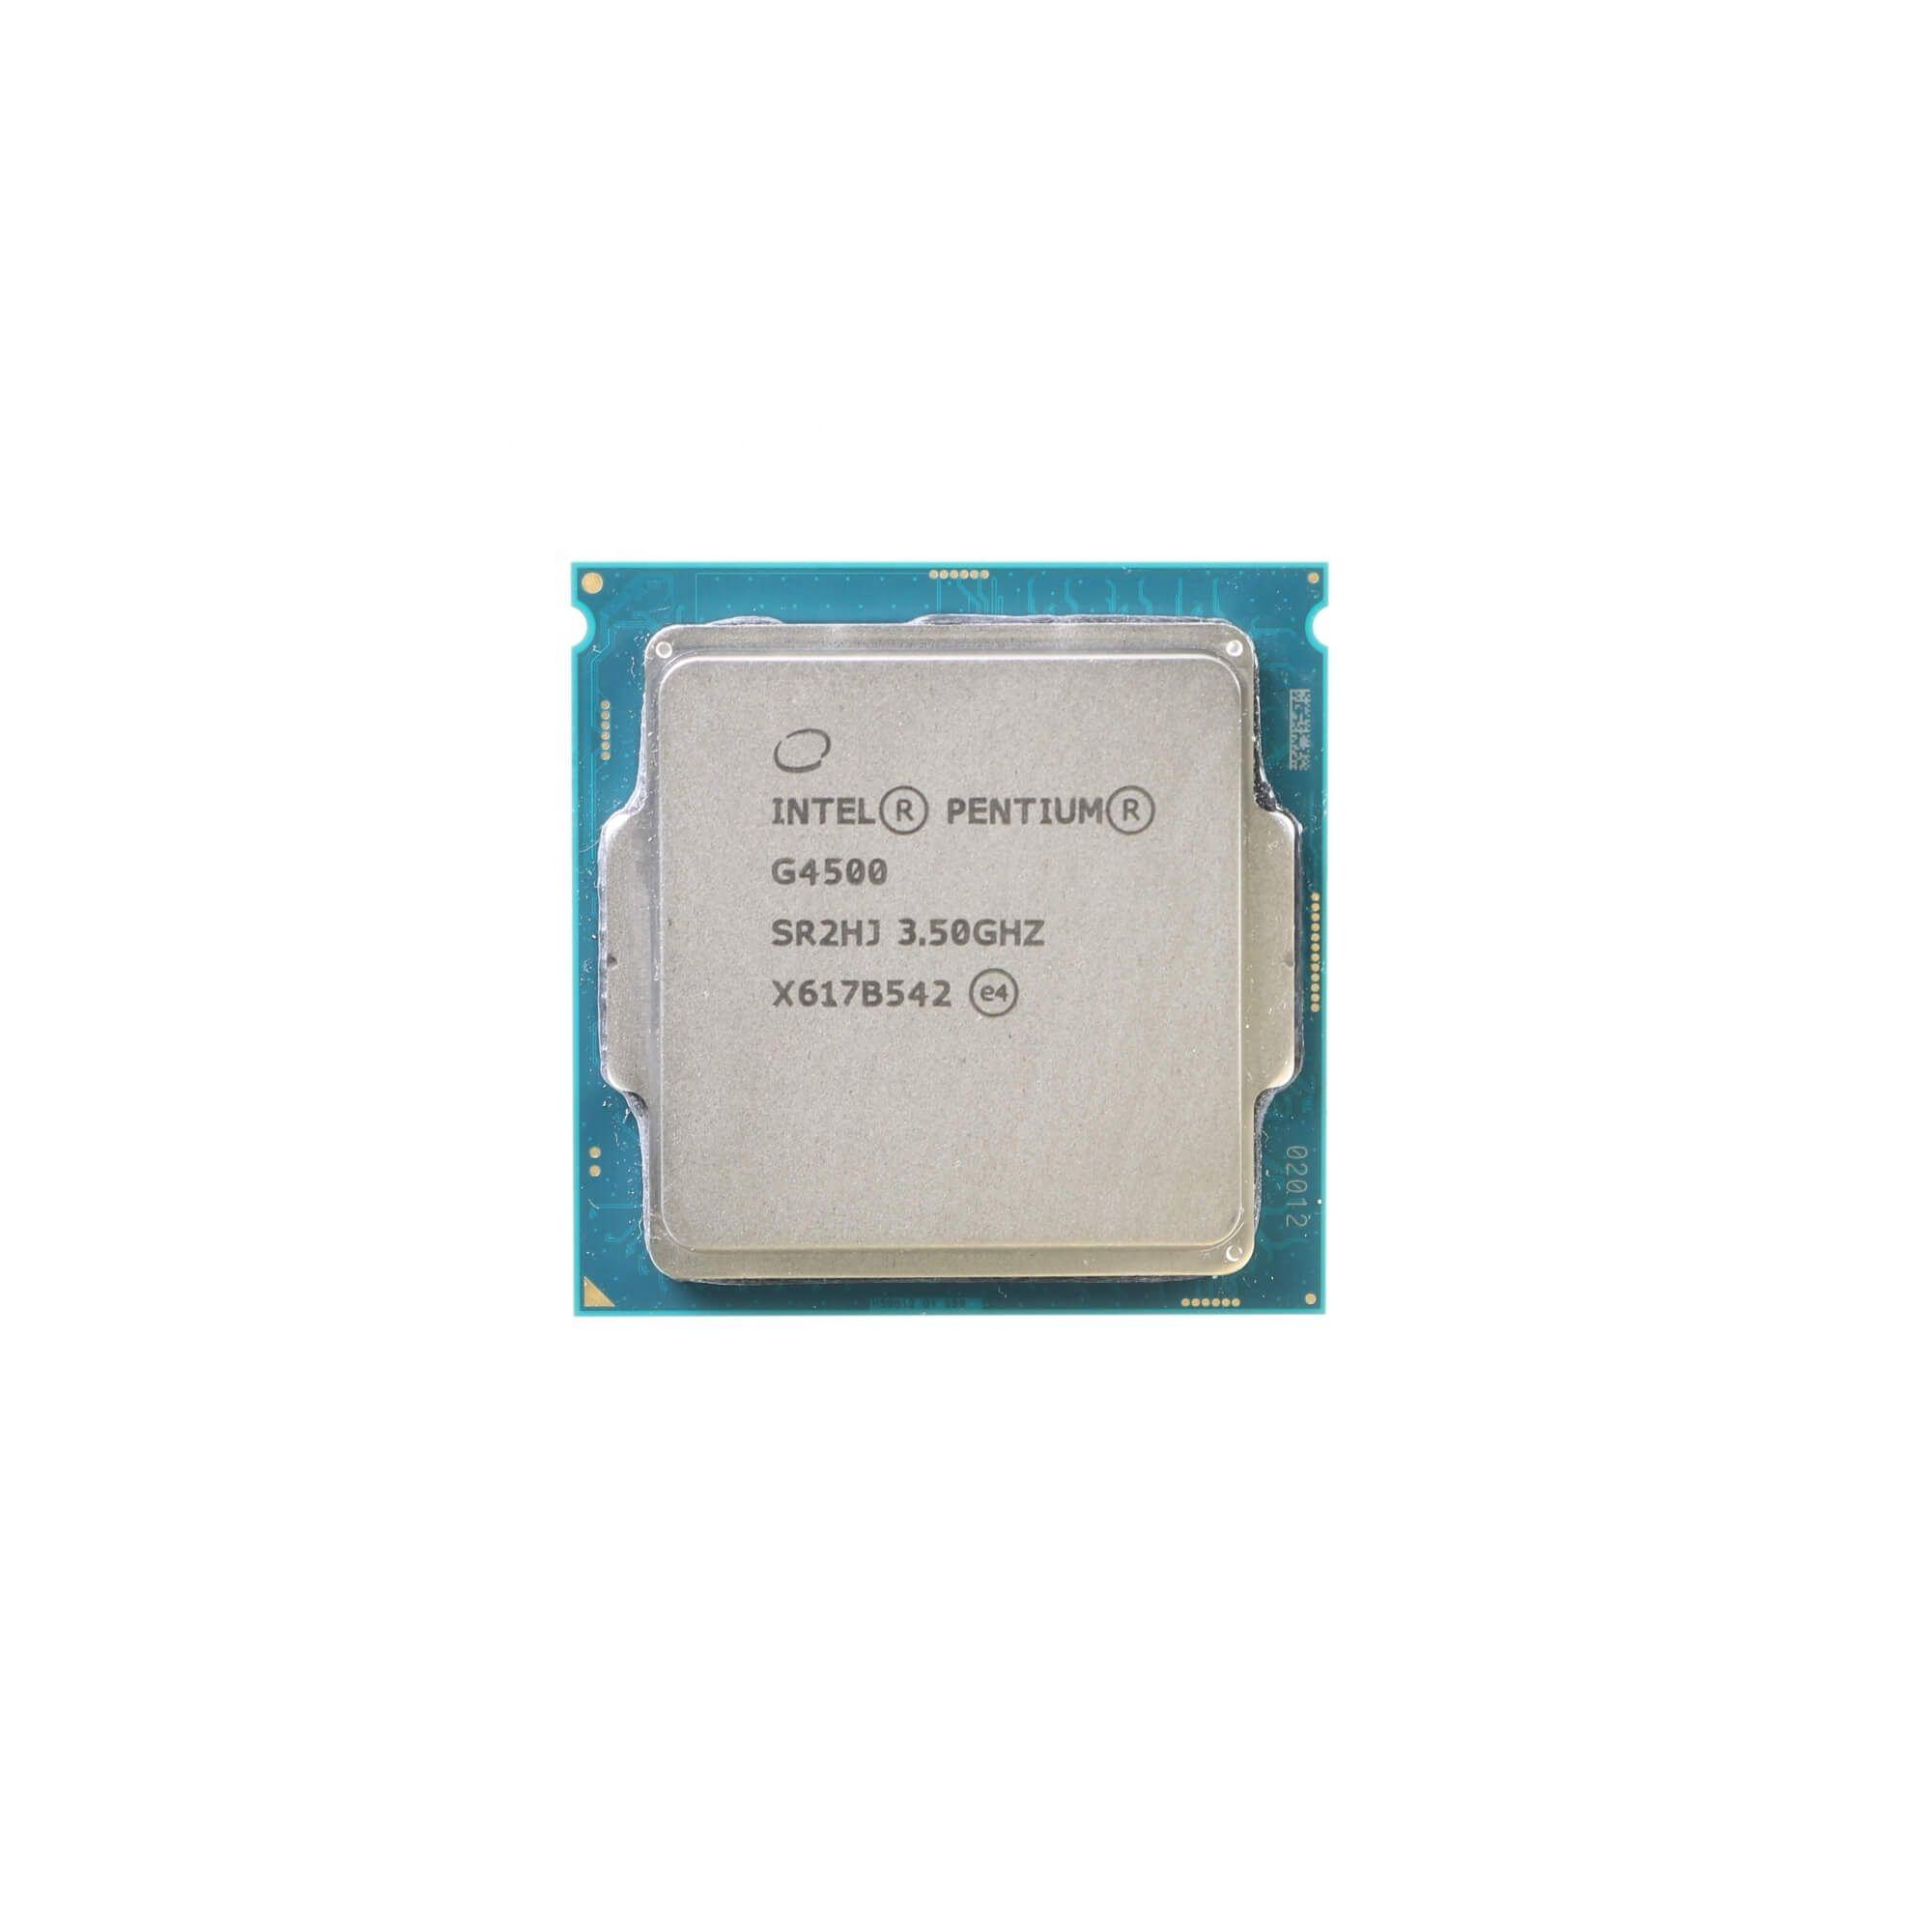 Intel Pentium G4500 CPU Processor 2 Core 3.50GHz 3MB L3 Cache 51W SR2HJ